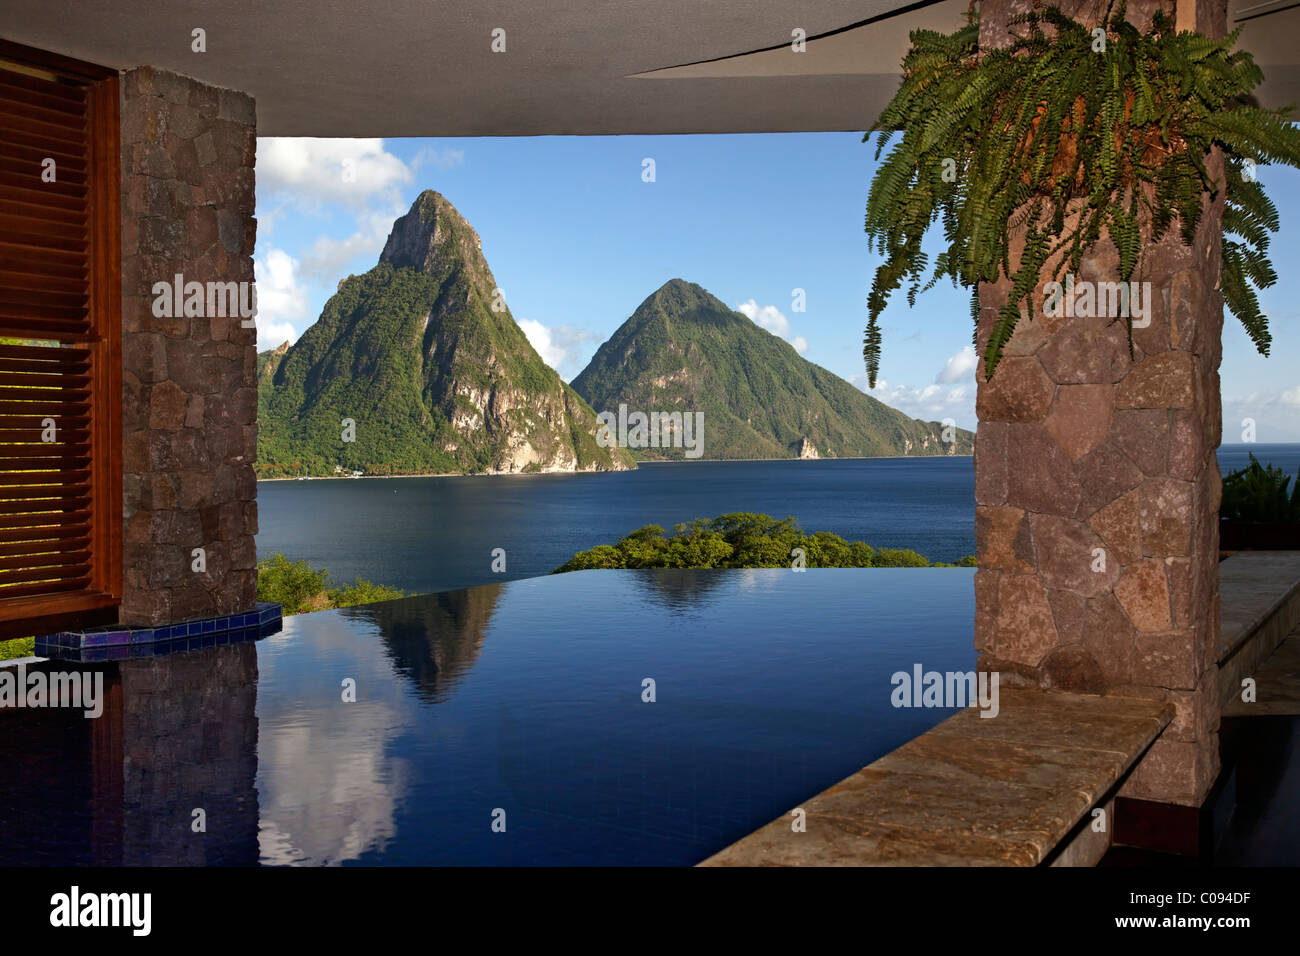 Infinity pool in suite, Pitons mountains, Jade Mountain luxury hotel, Saint Lucia, Windward Islands, Lesser Antilles, - Stock Image